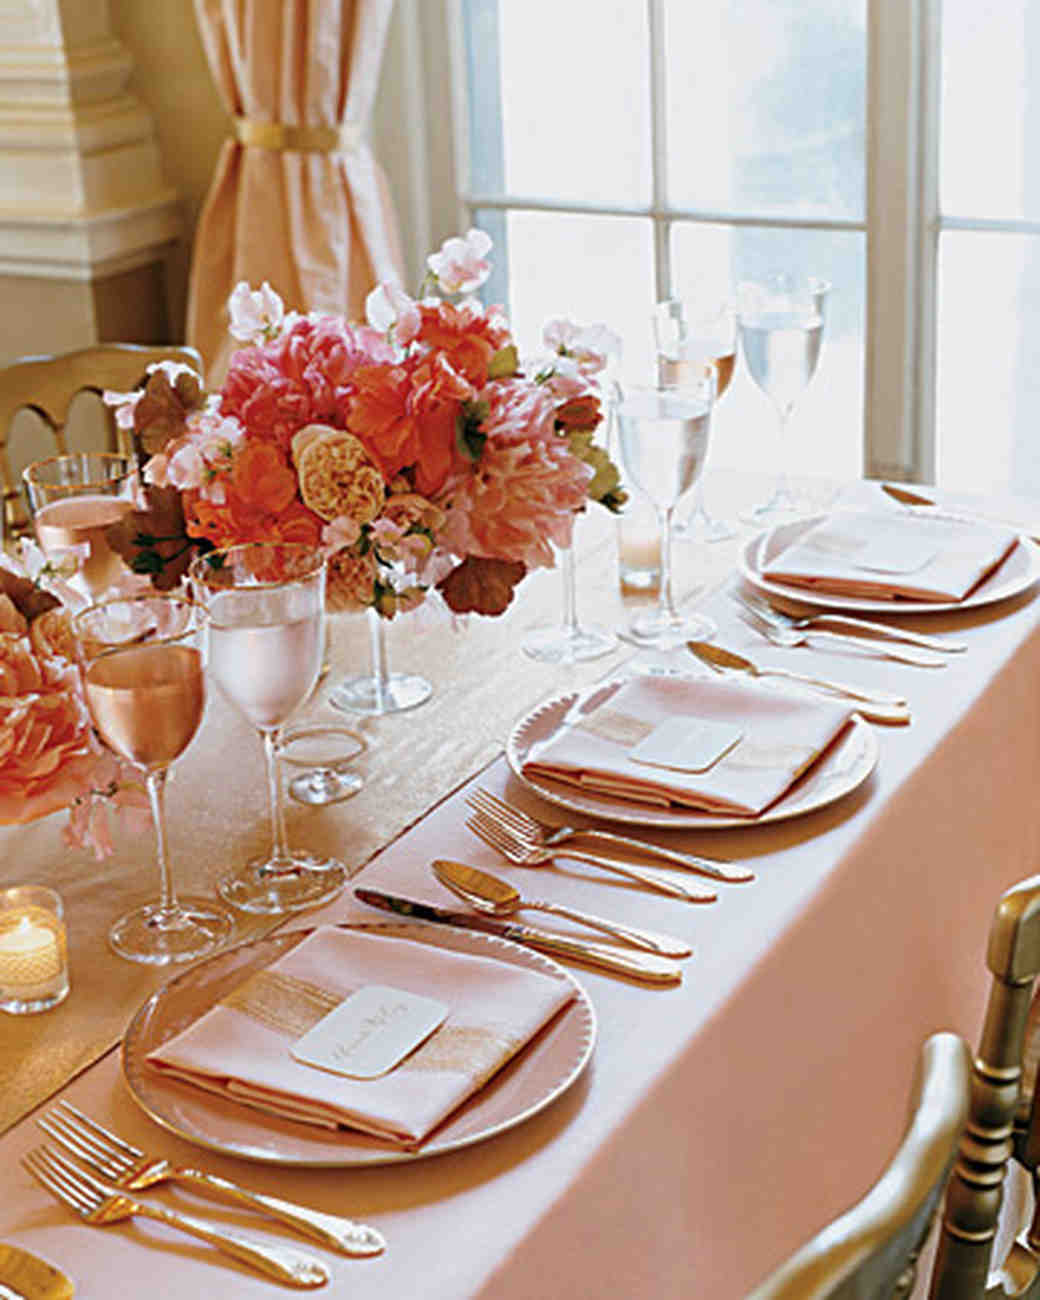 & Wedding Colors: Pink and Gold | Martha Stewart Weddings